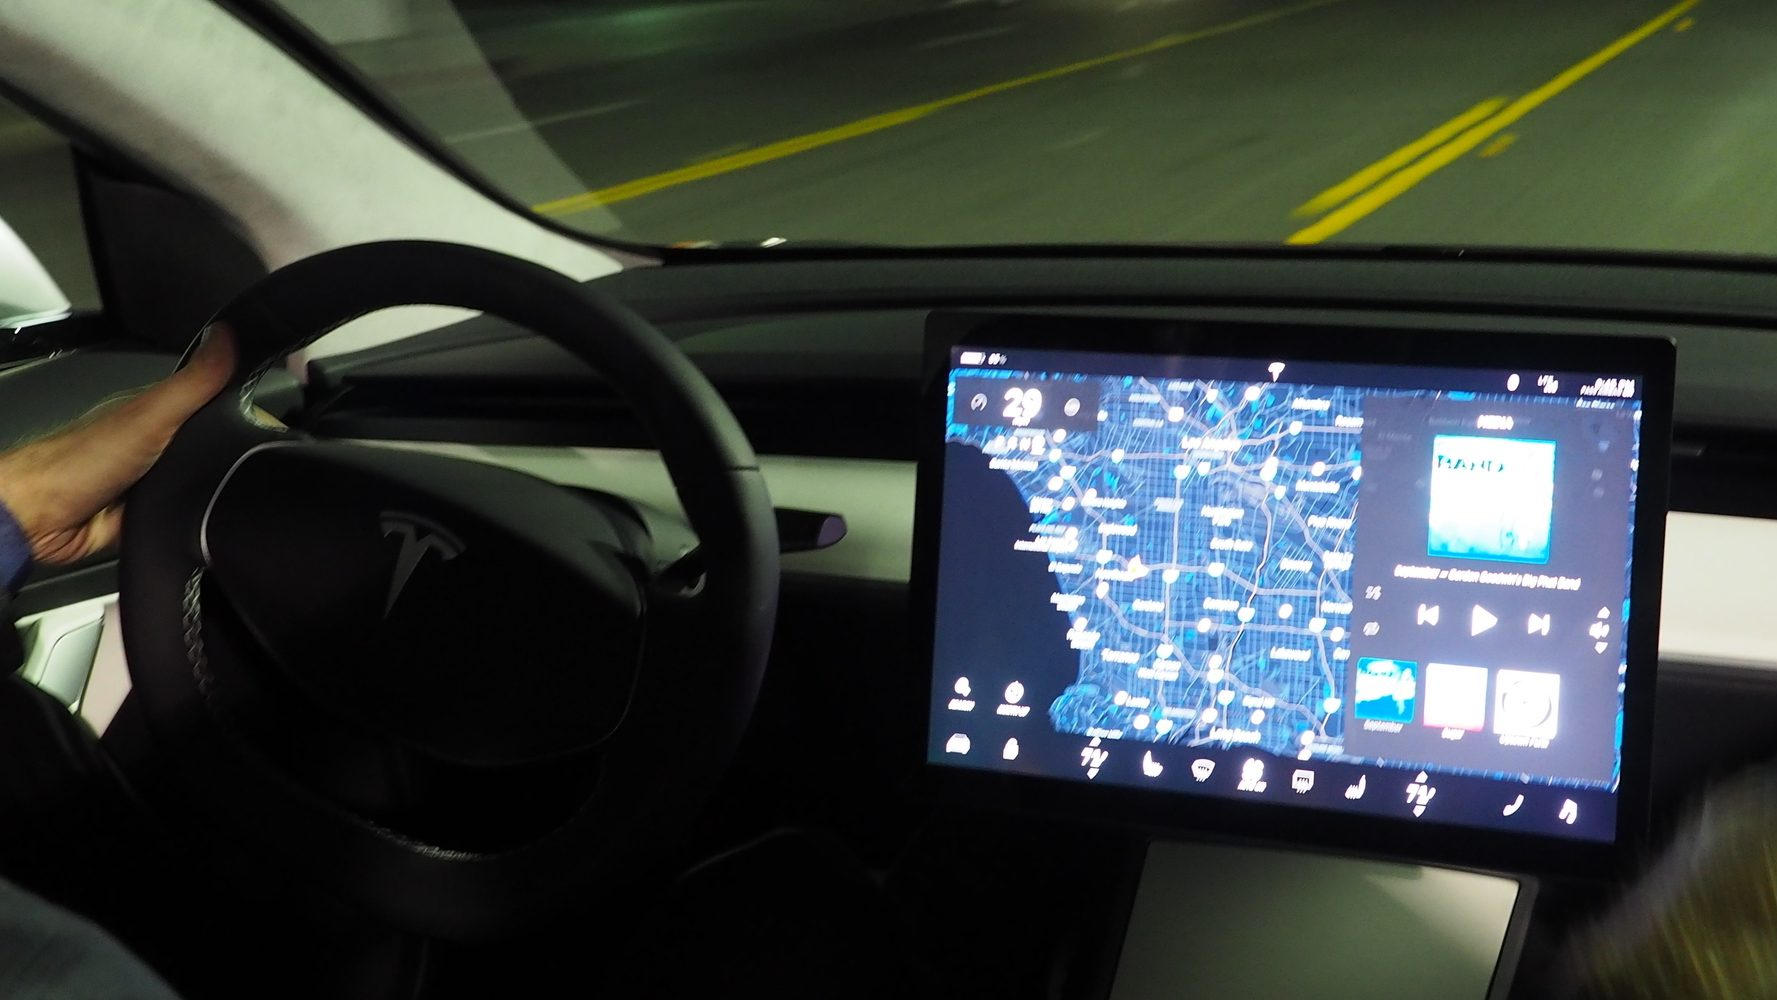 The differences in the displays of the Tesla Model 3 and Model S/X